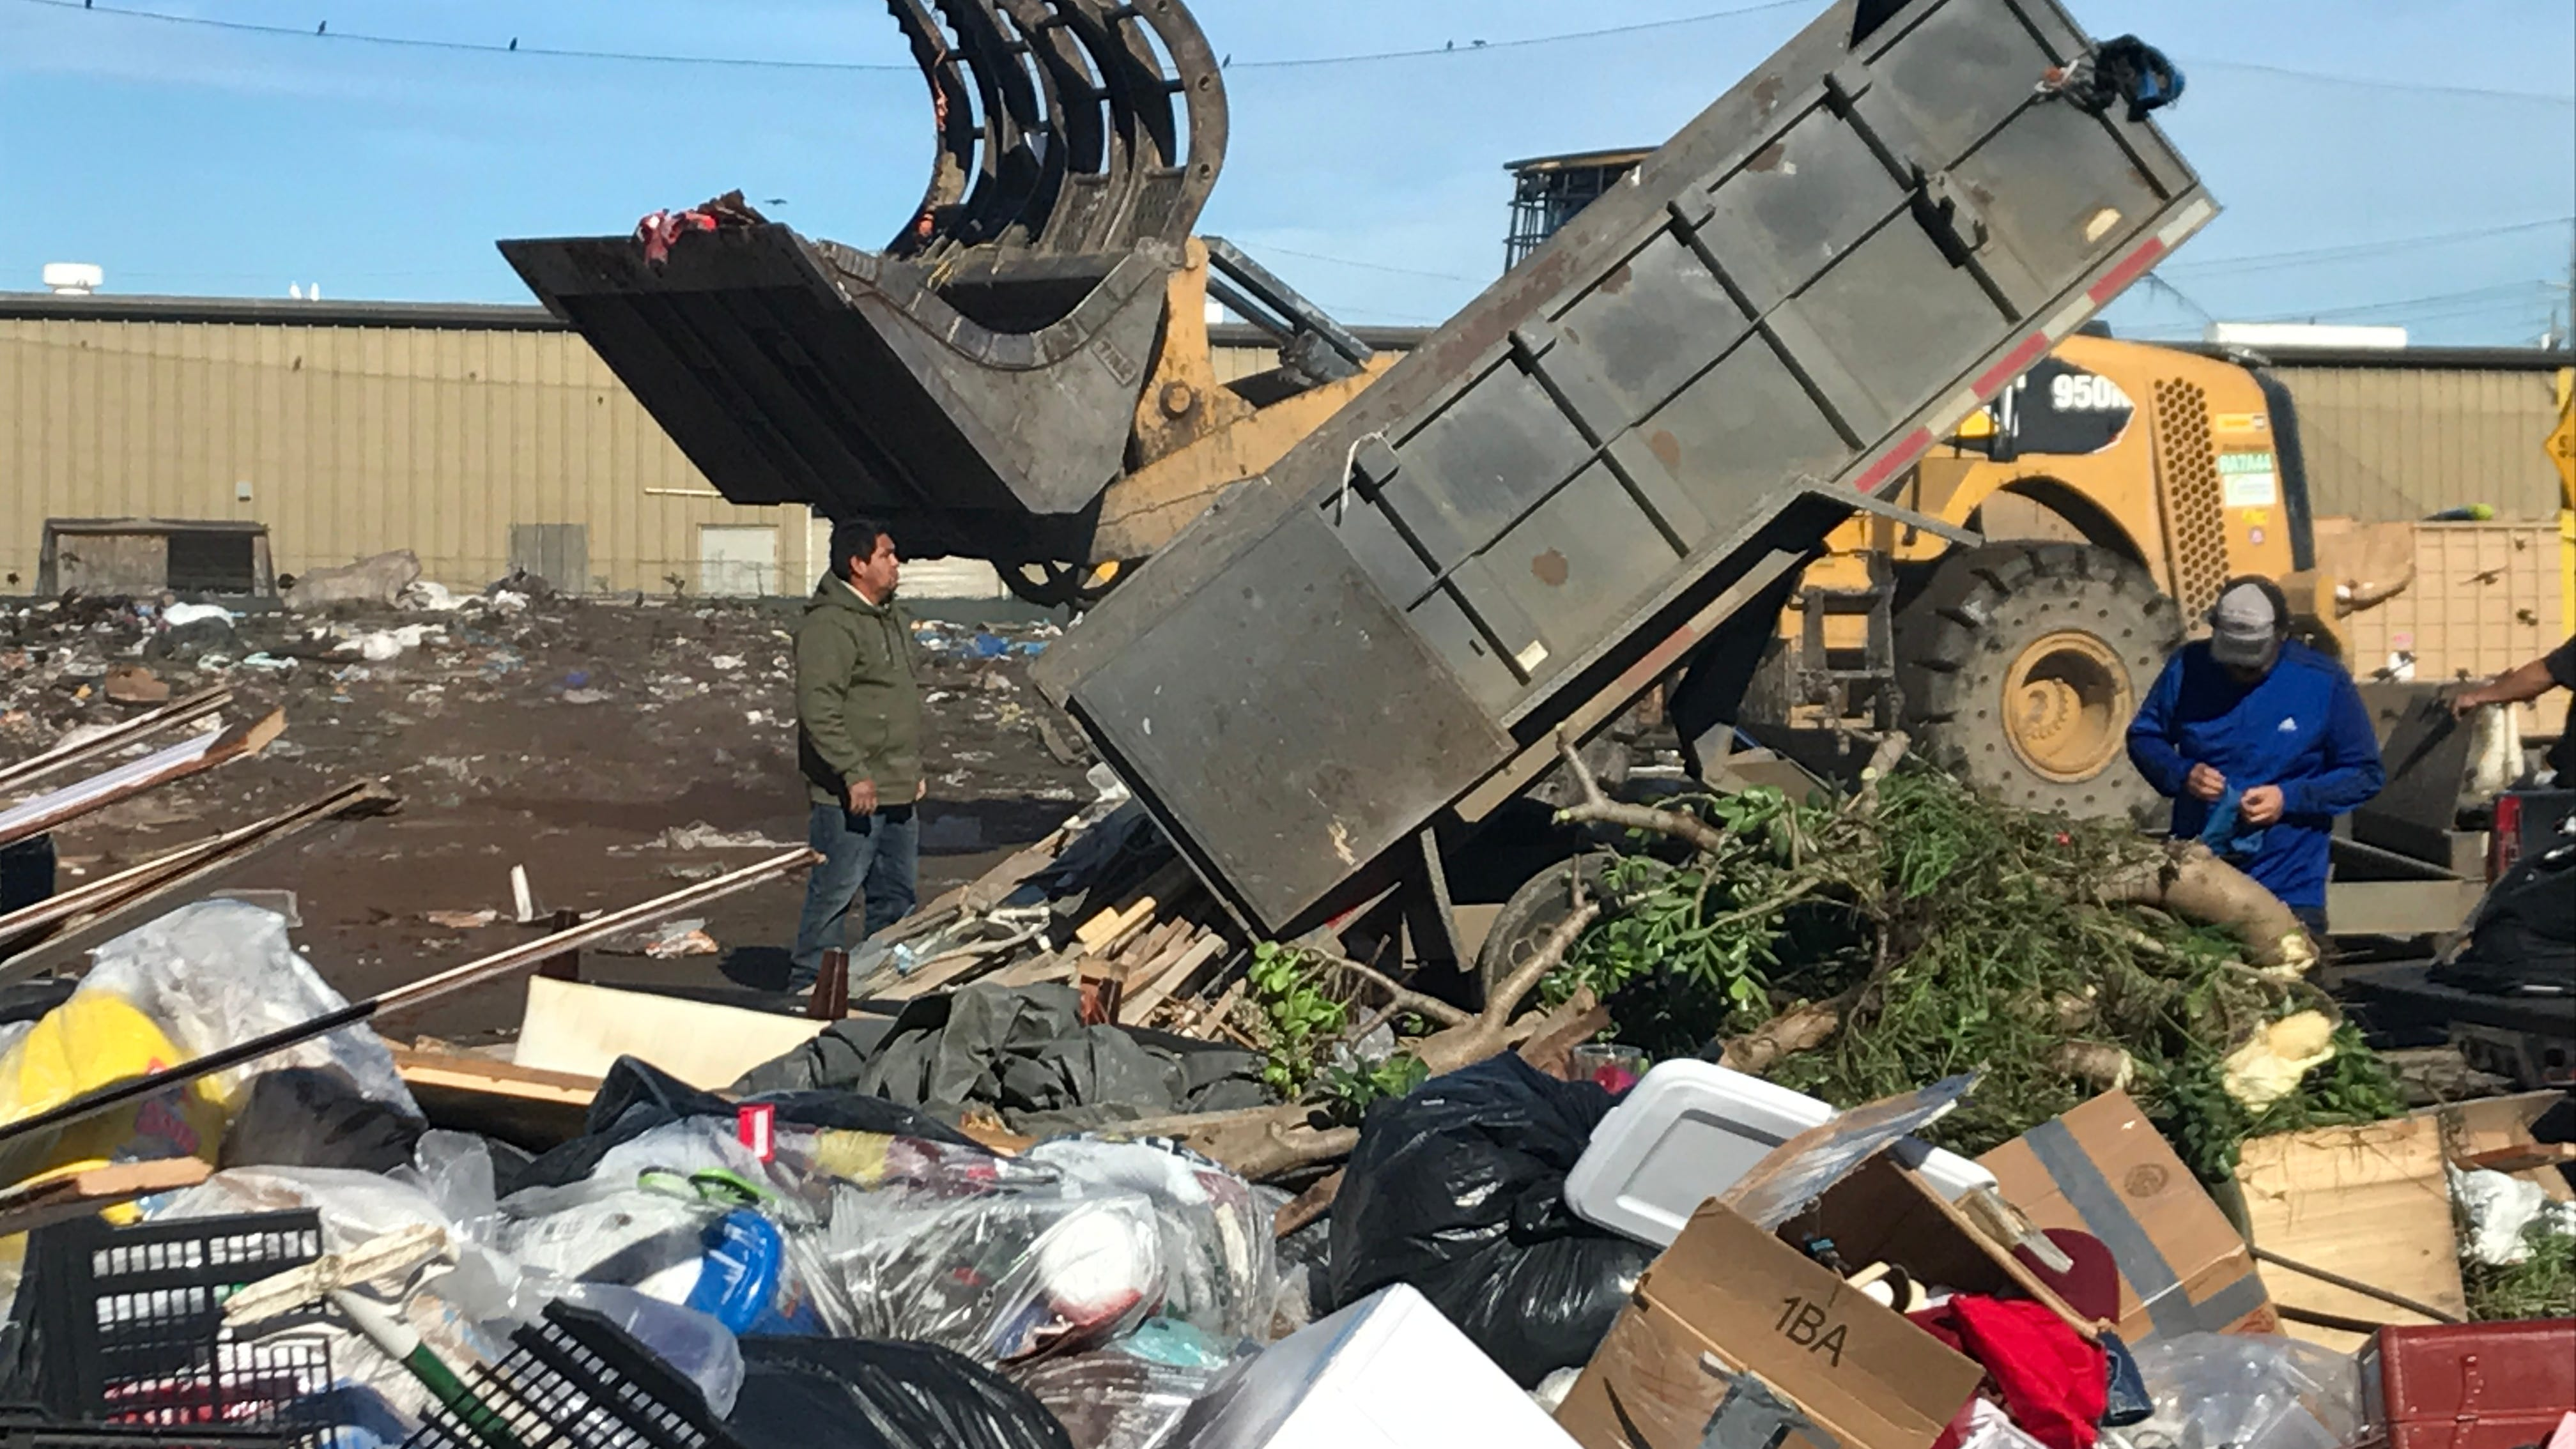 A man was picked up in a waste container and dumped at a Salinas garbage transfer station. The man was dumped as part of a load from a dump trailer, like the one in the foreground.